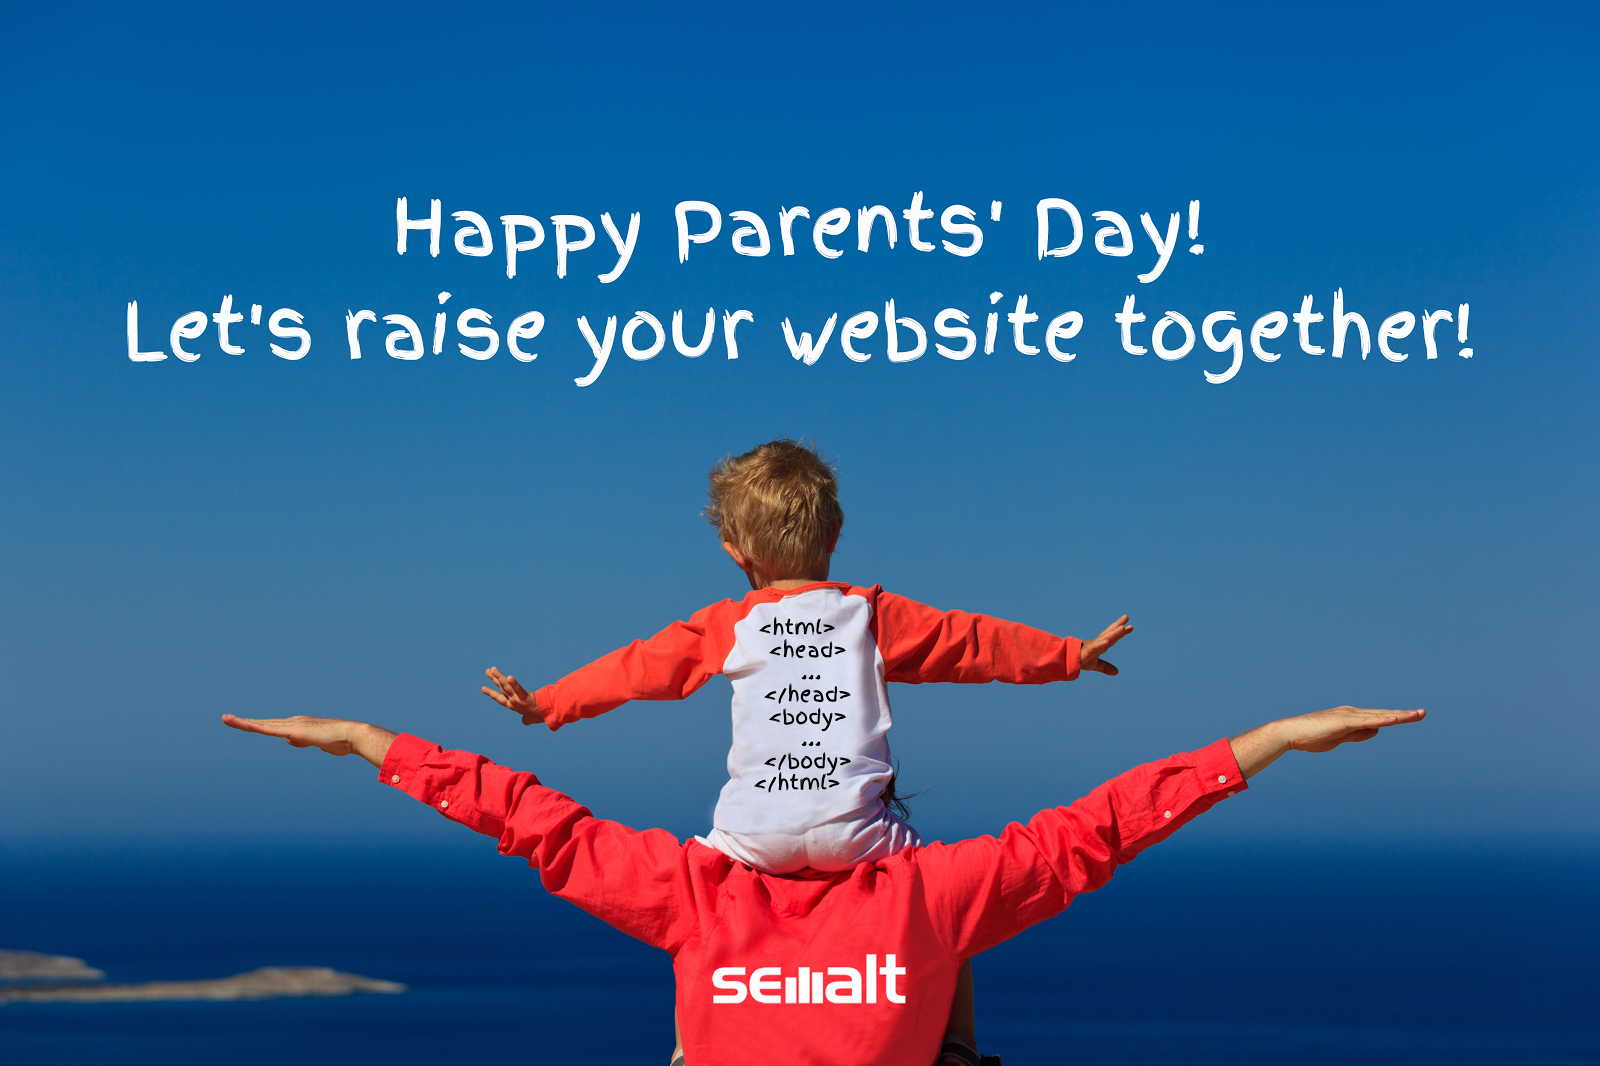 Happy Parents' Day!